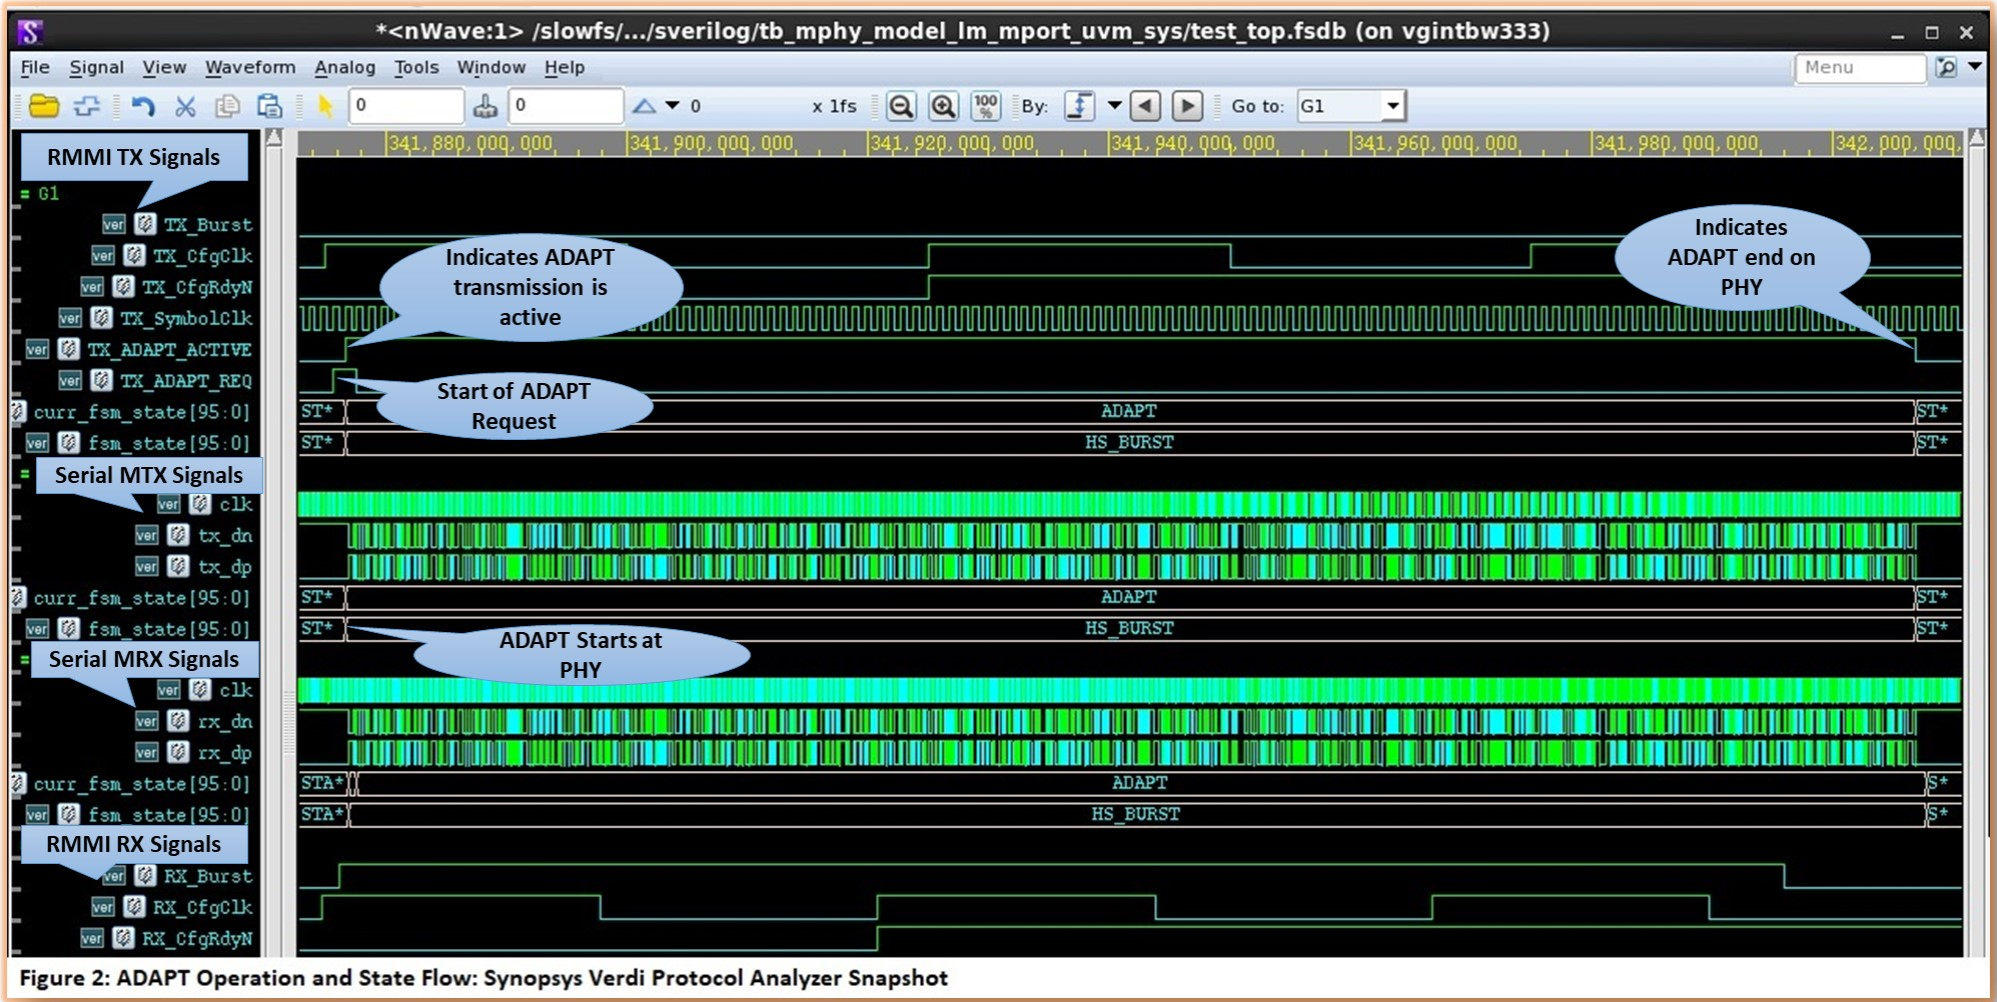 Mipi M Phy 41 Preventing Data Loss In High Speed Mobility Devices Block Diagram Of The Dphy Physical Layer Ip Core A Snapshot Taken From Synopsys Verdi Protocol Analyzer Natively Integrated With Vc Verification For Supporting Adapt Feature